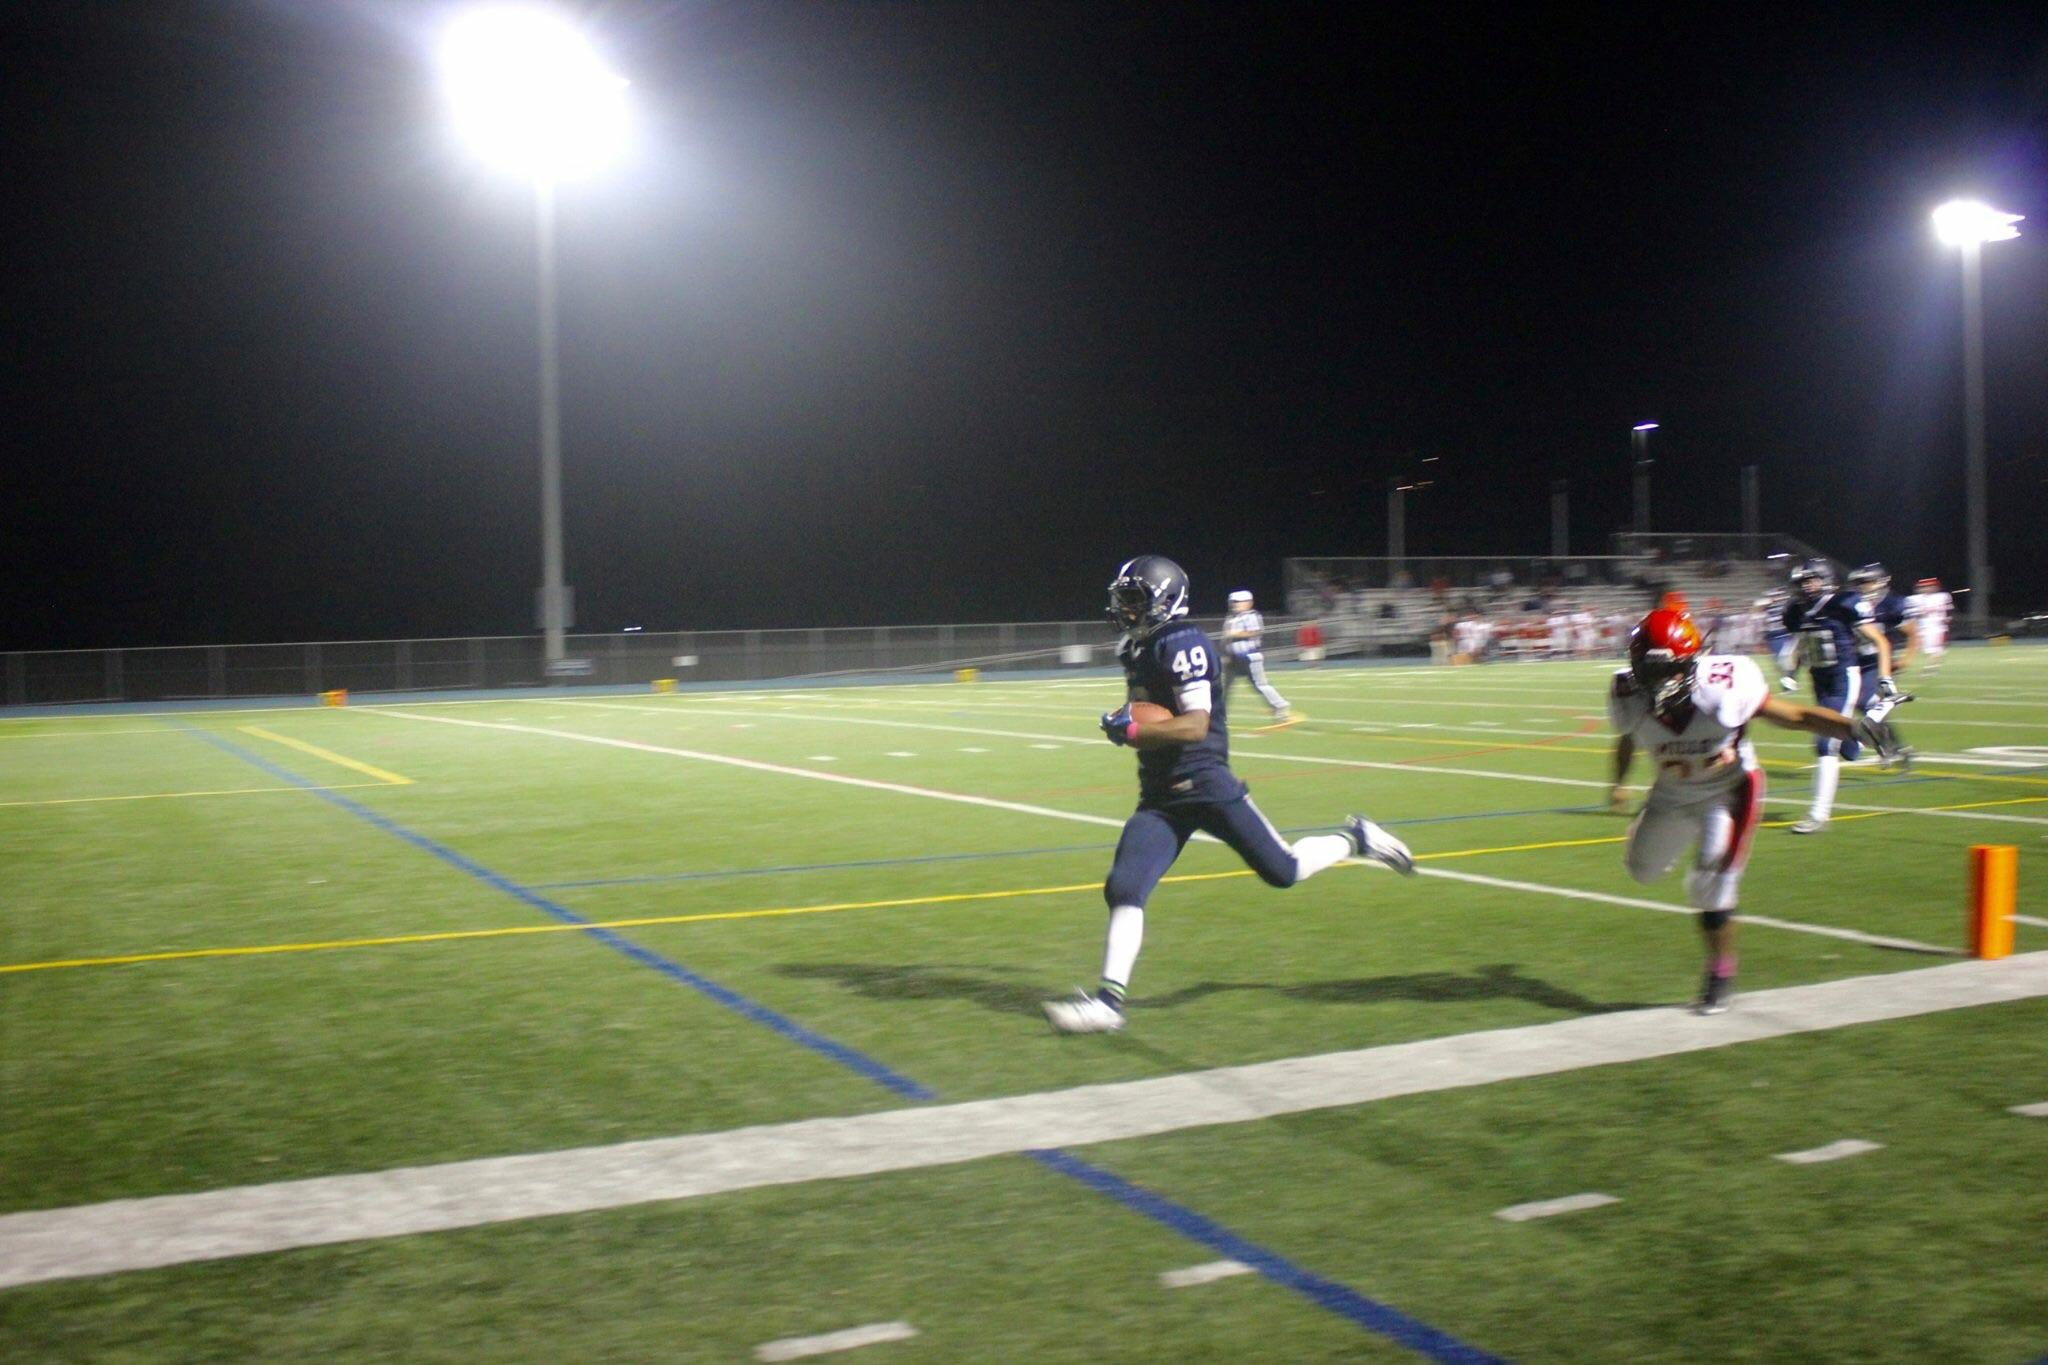 Senior Shanil Patel ran with an interception to score a touchdown.